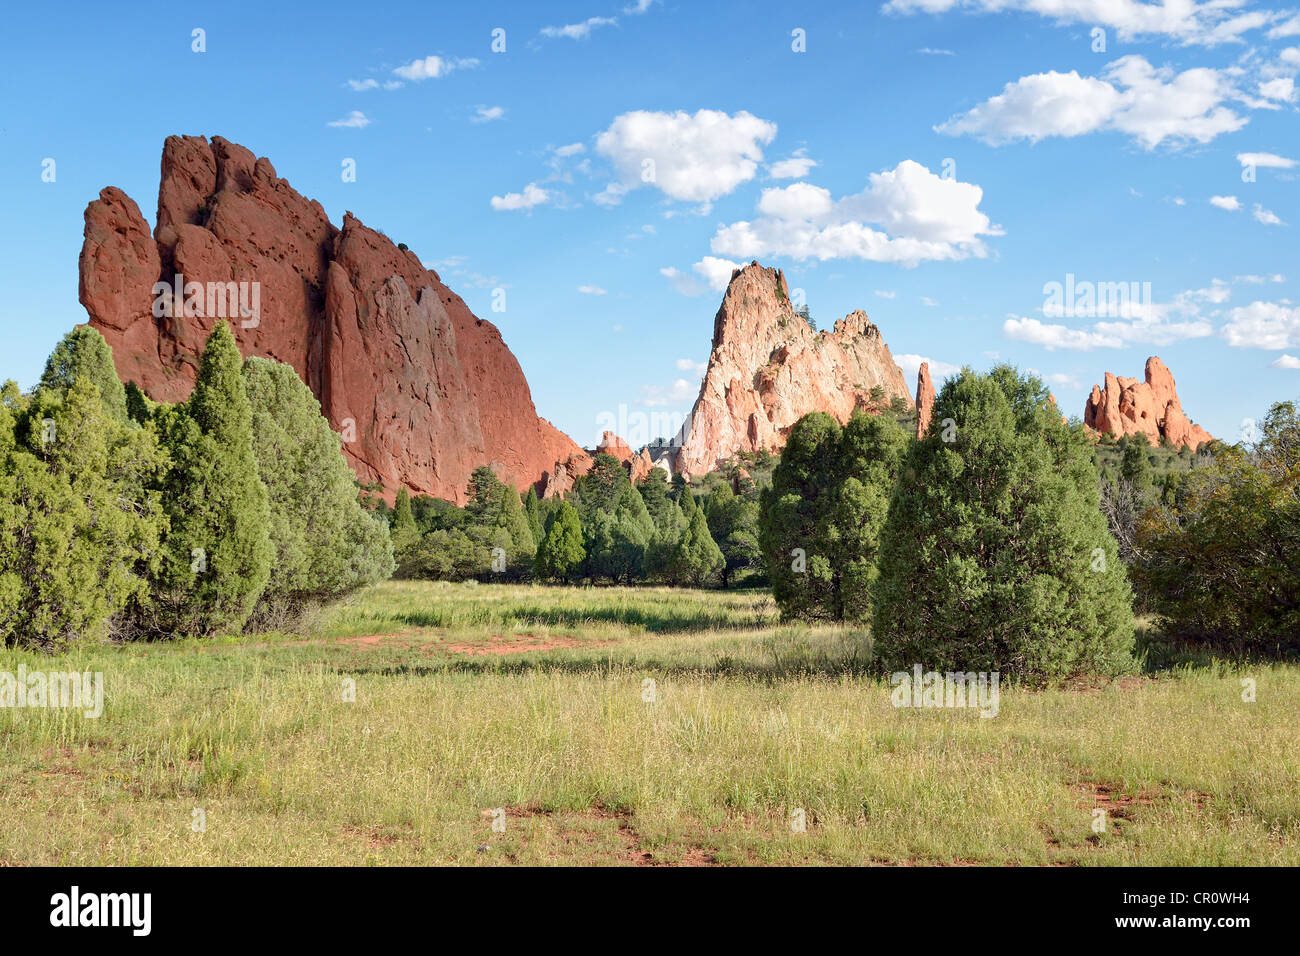 South Gate Rock, left, and Cathedral Rock, Garden of the Gods, red sandstone rocks, Colorado Springs, Colorado, - Stock Image